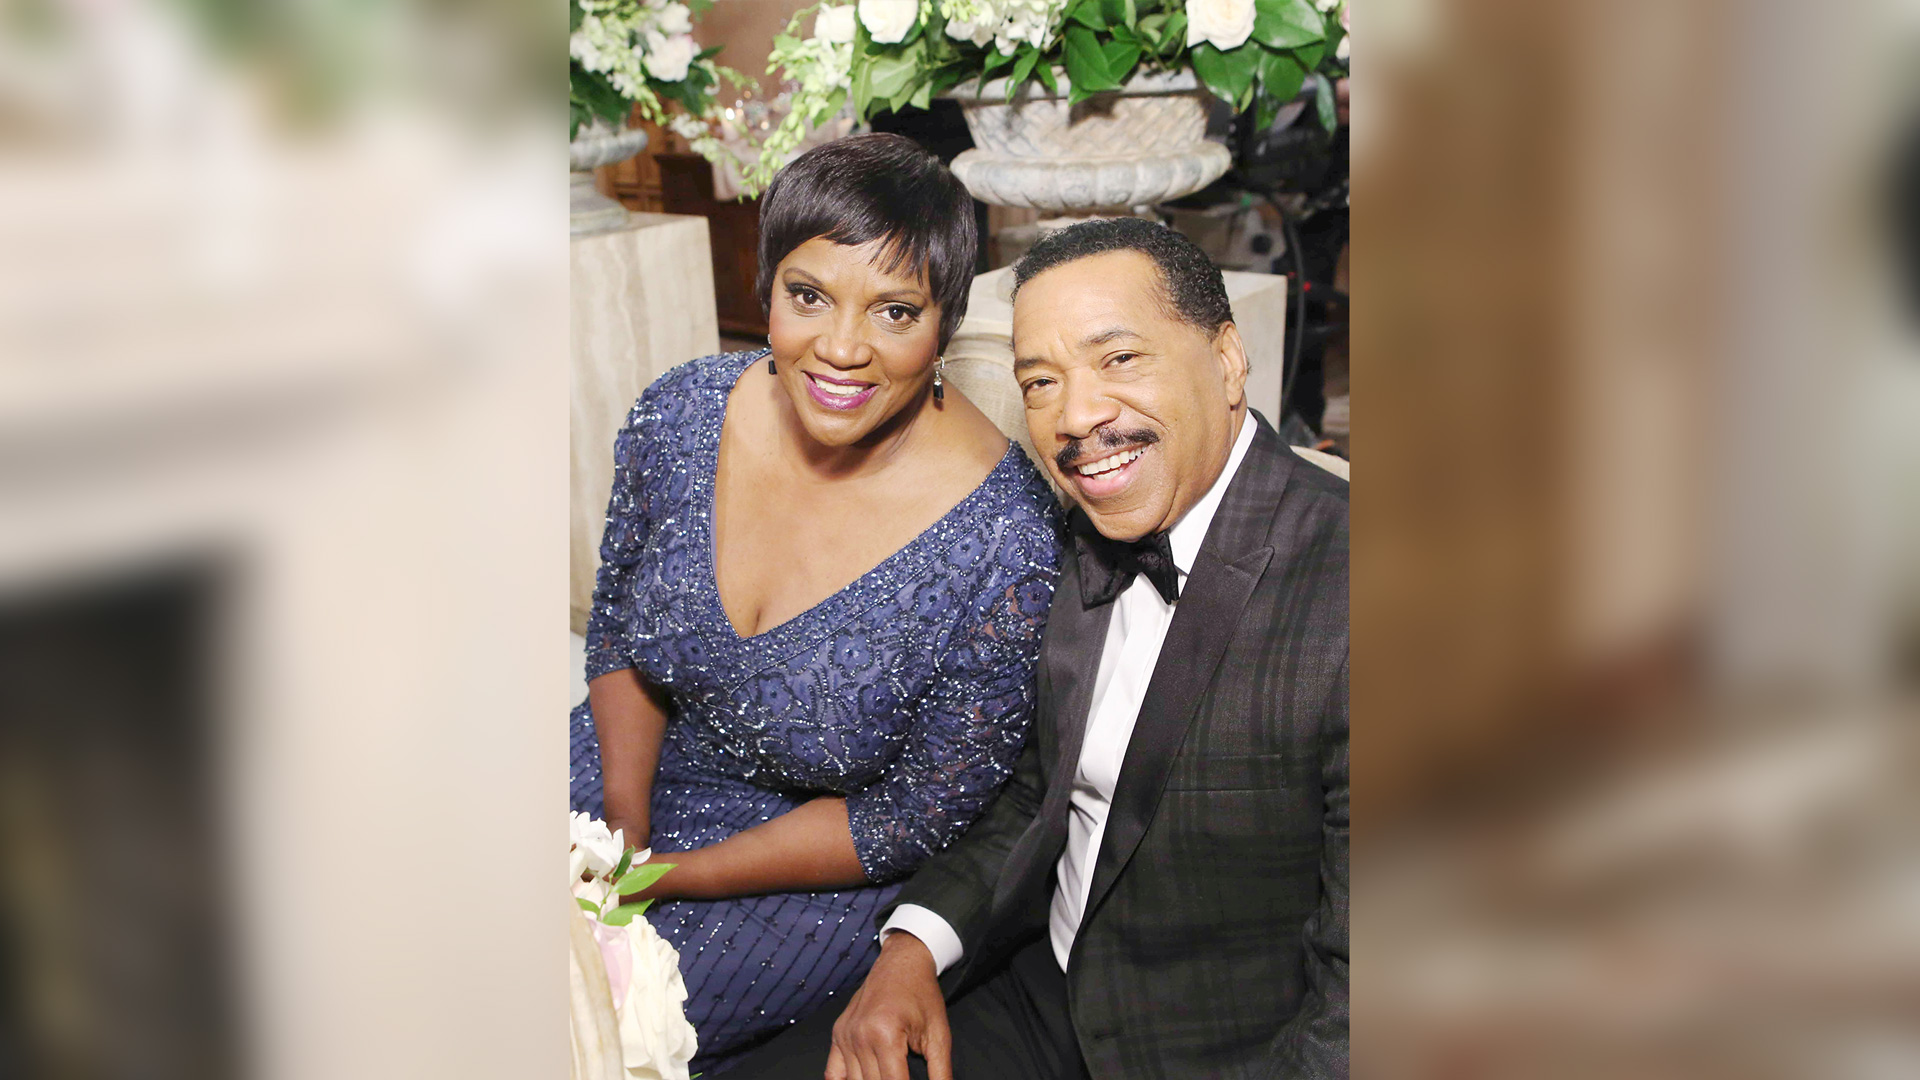 Vivienne Avant (Anna Maria Horsford) and Julius Avant (Obba Babatundé) looking happy as ever.